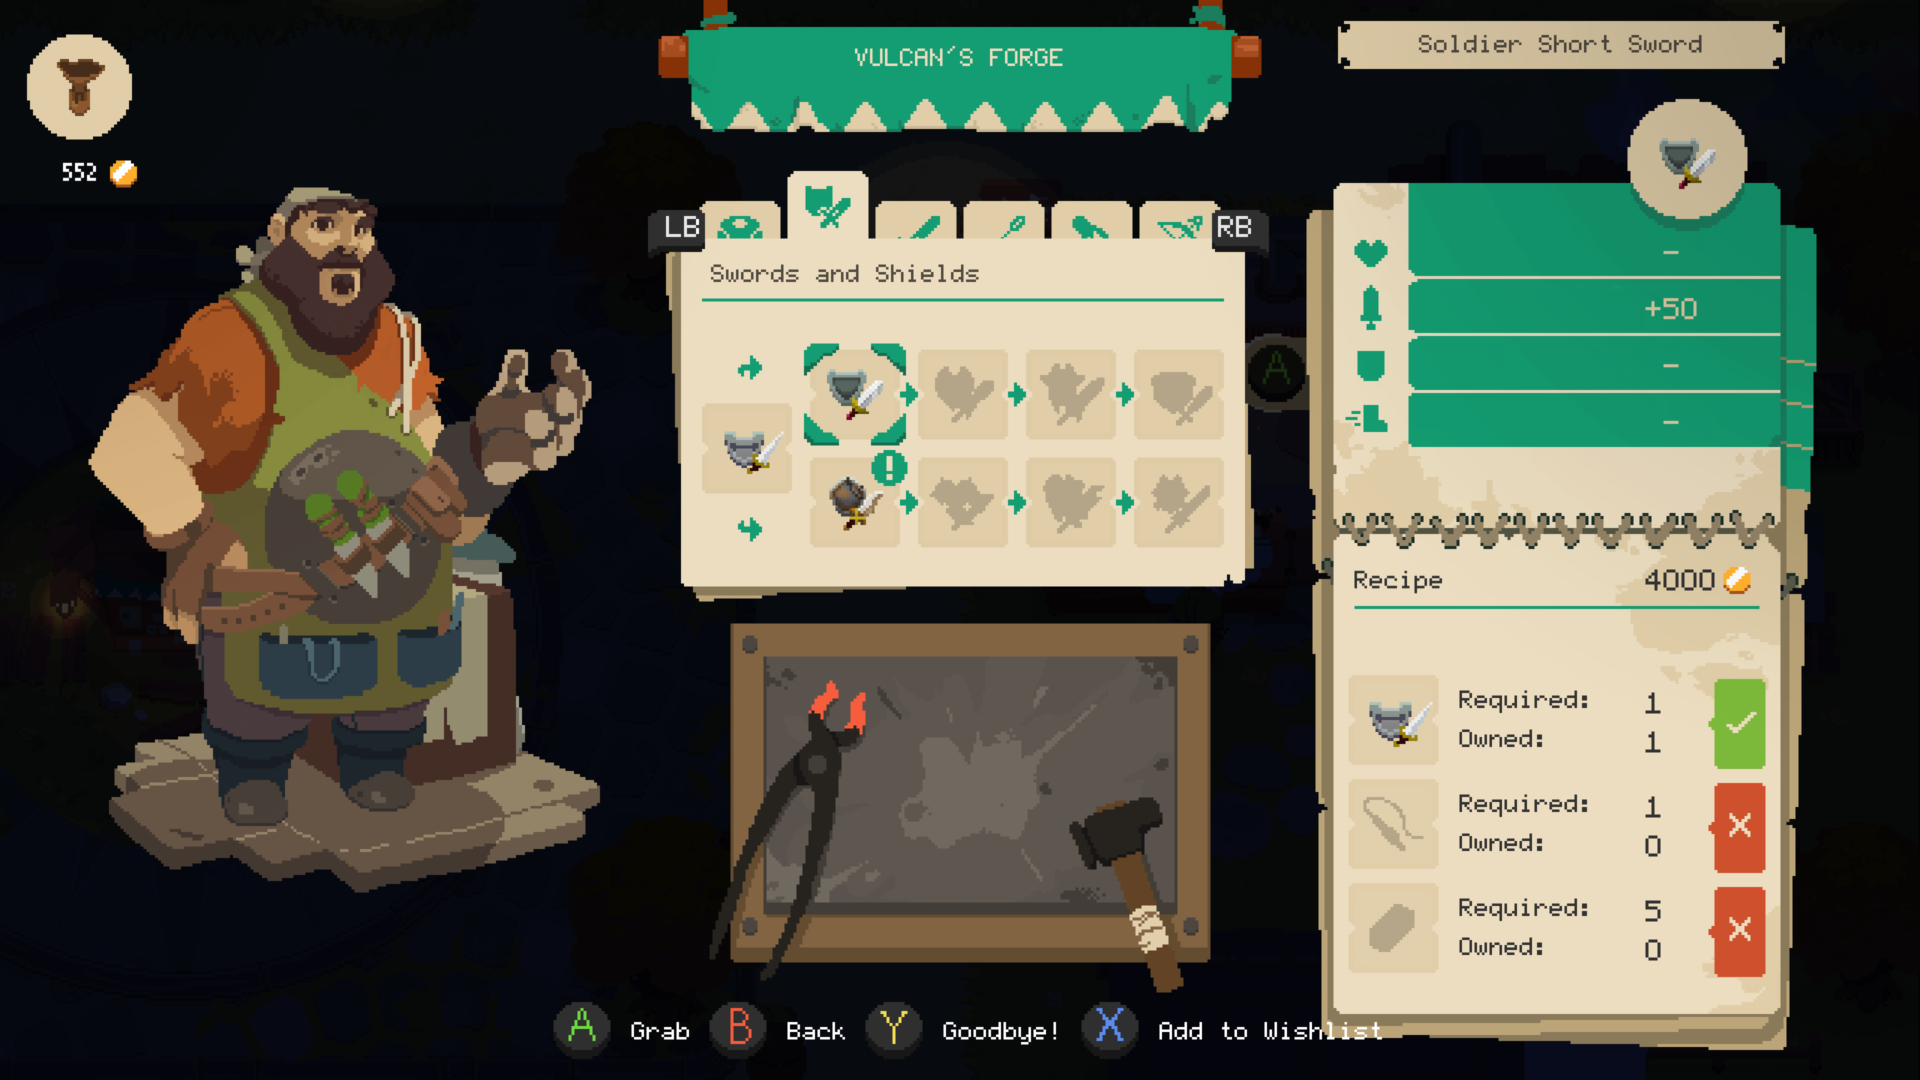 Forge screenshot of Moonlighter video game interface.